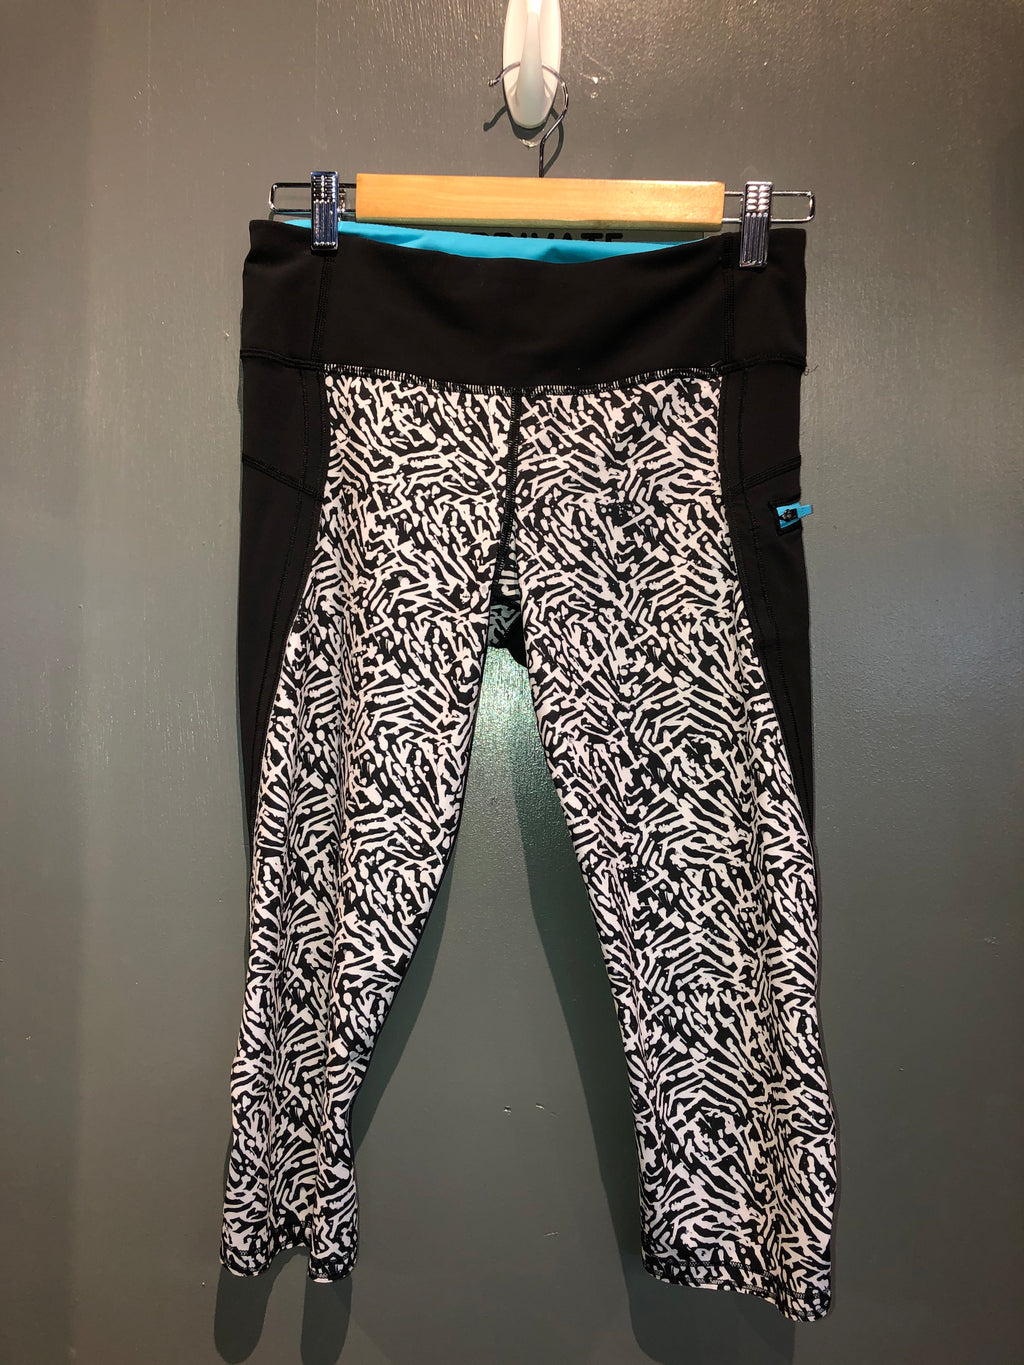 Lululemon Black white crops sz 6